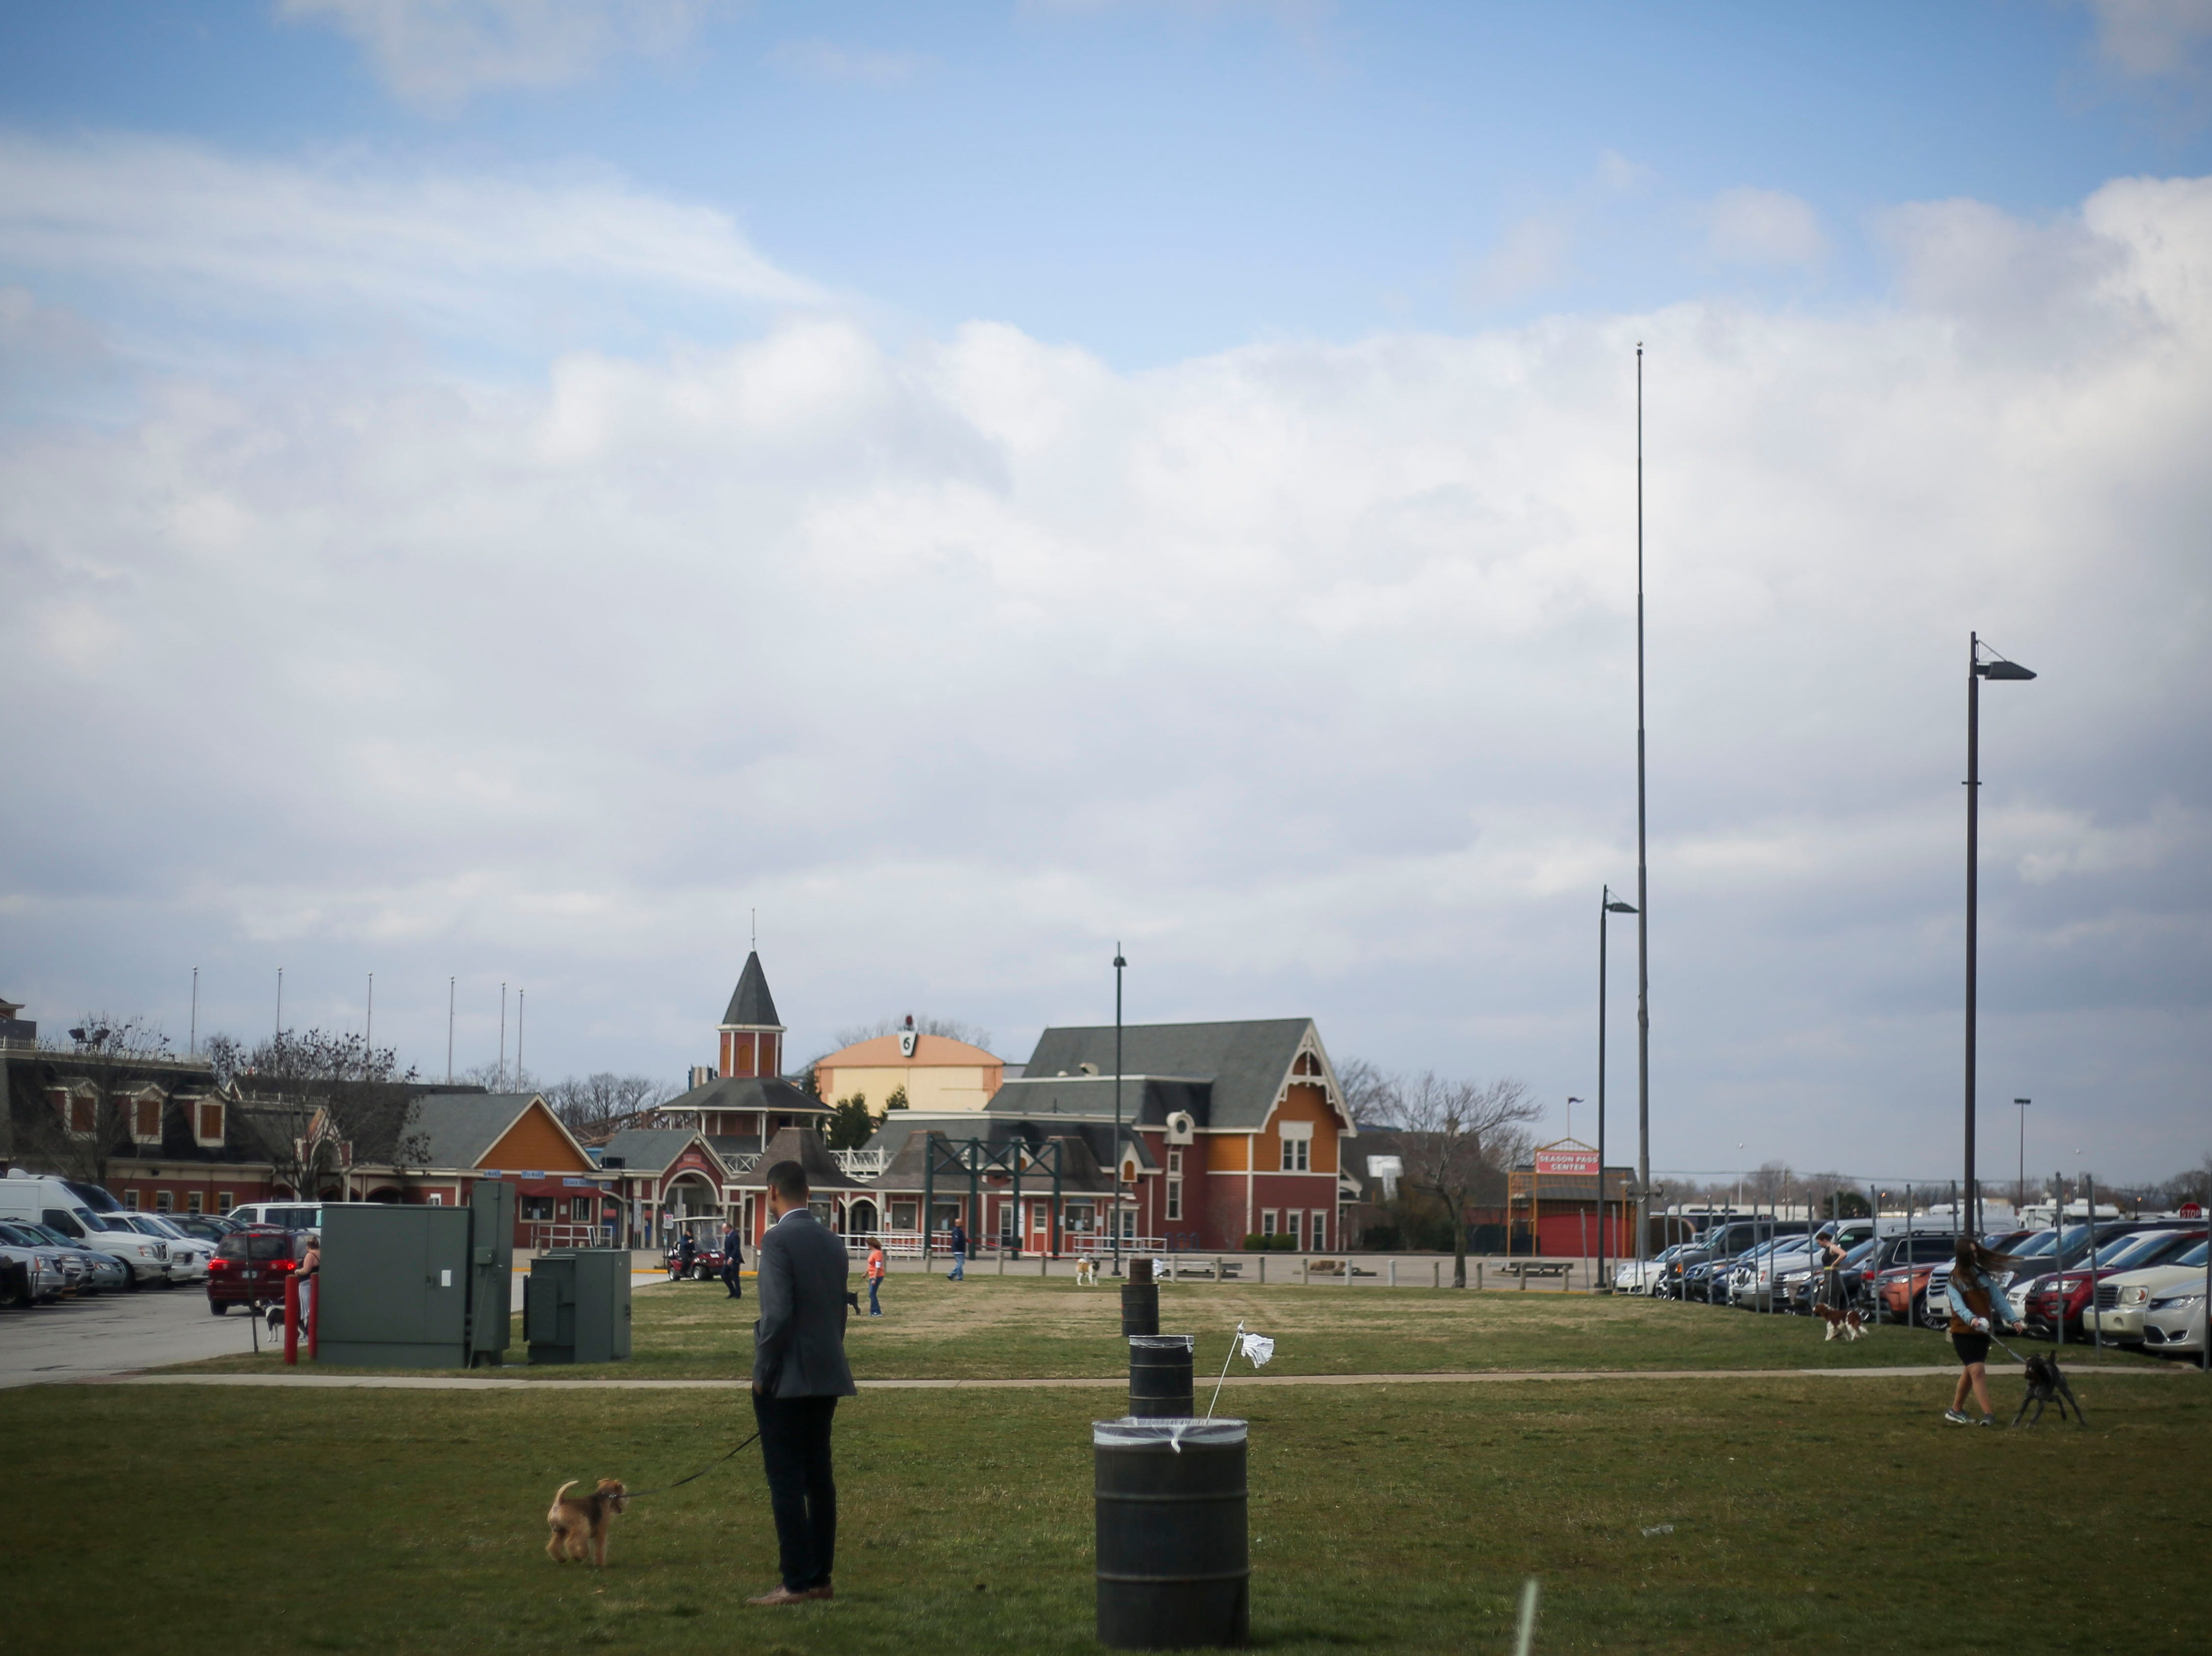 Handlers and owners walk their dogs outside during the Kentuckiana Cluster of Dog Shows at the Kentucky Fair and Exposition Center in Louisville, Ky. on Thursday, March 14, 2019.